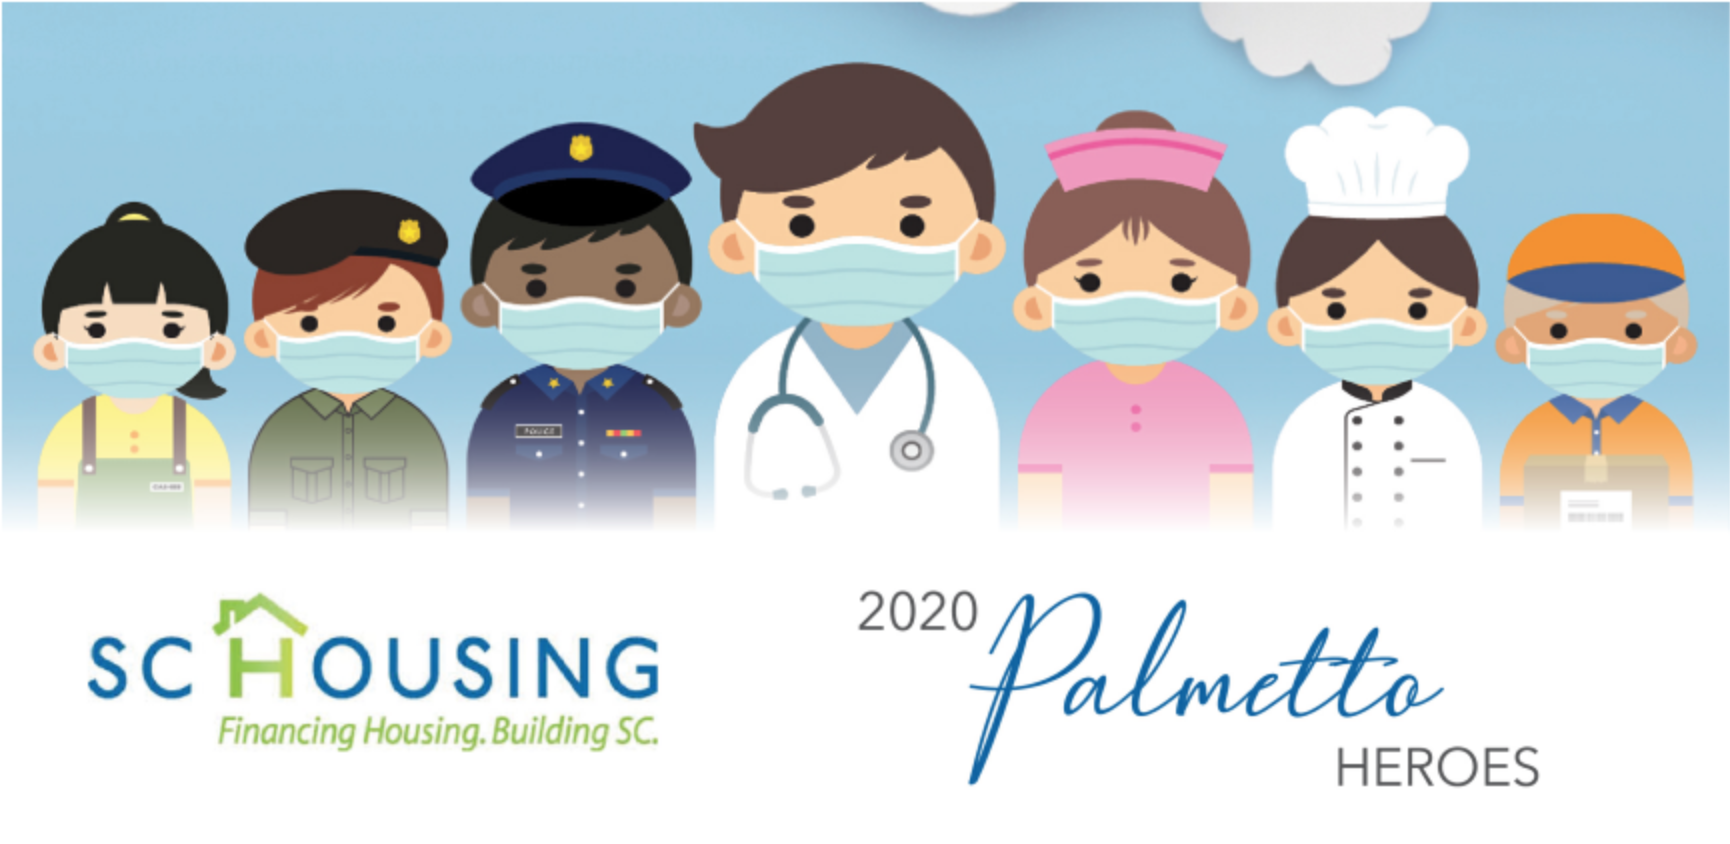 2020 Palmetto Heroes Program - SC Housing